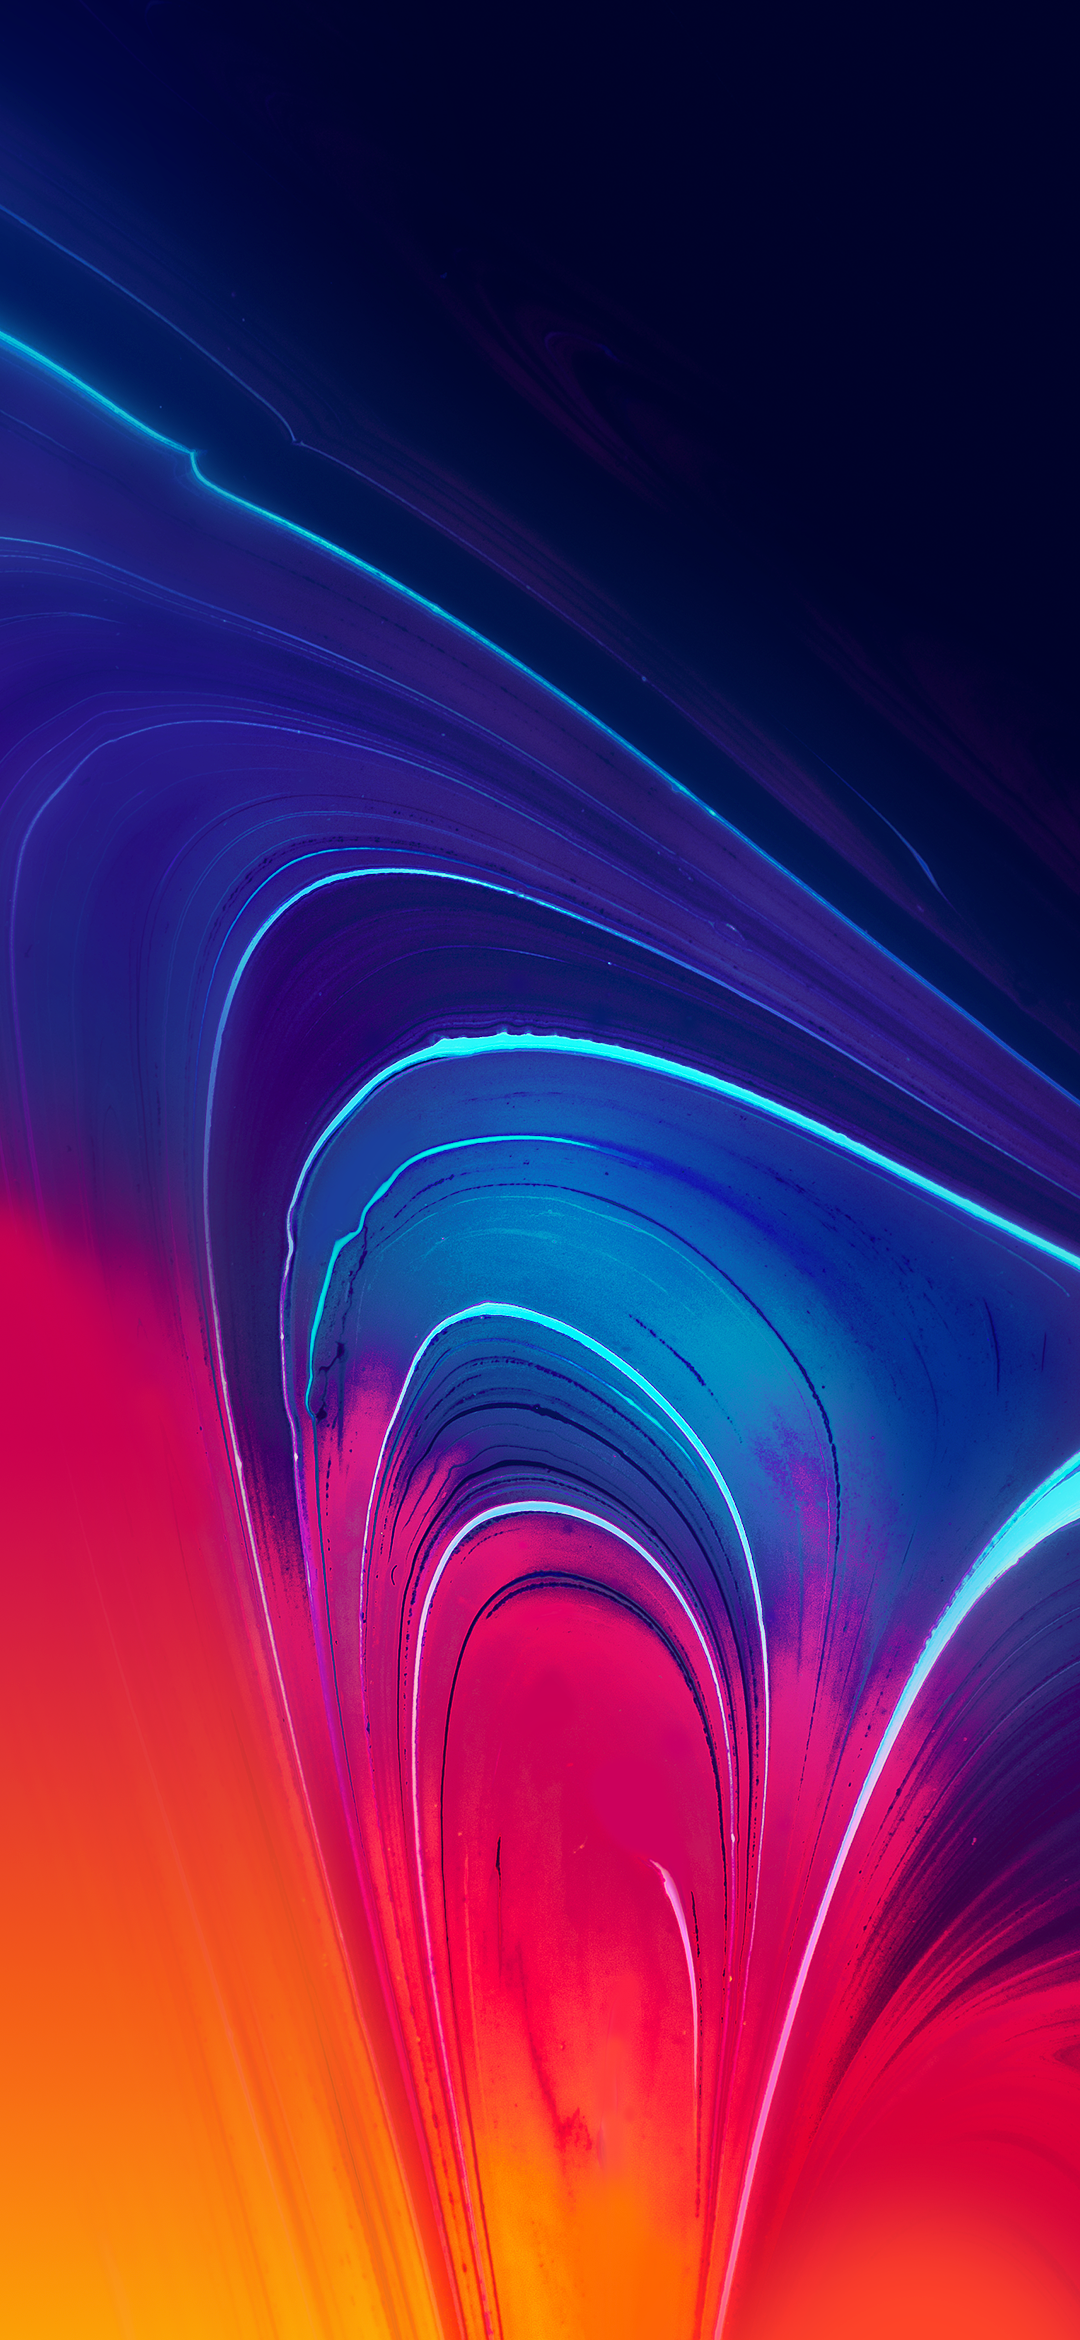 Download Lenovo Z6 Youth Stock Wallpapers [FHD+] (Official